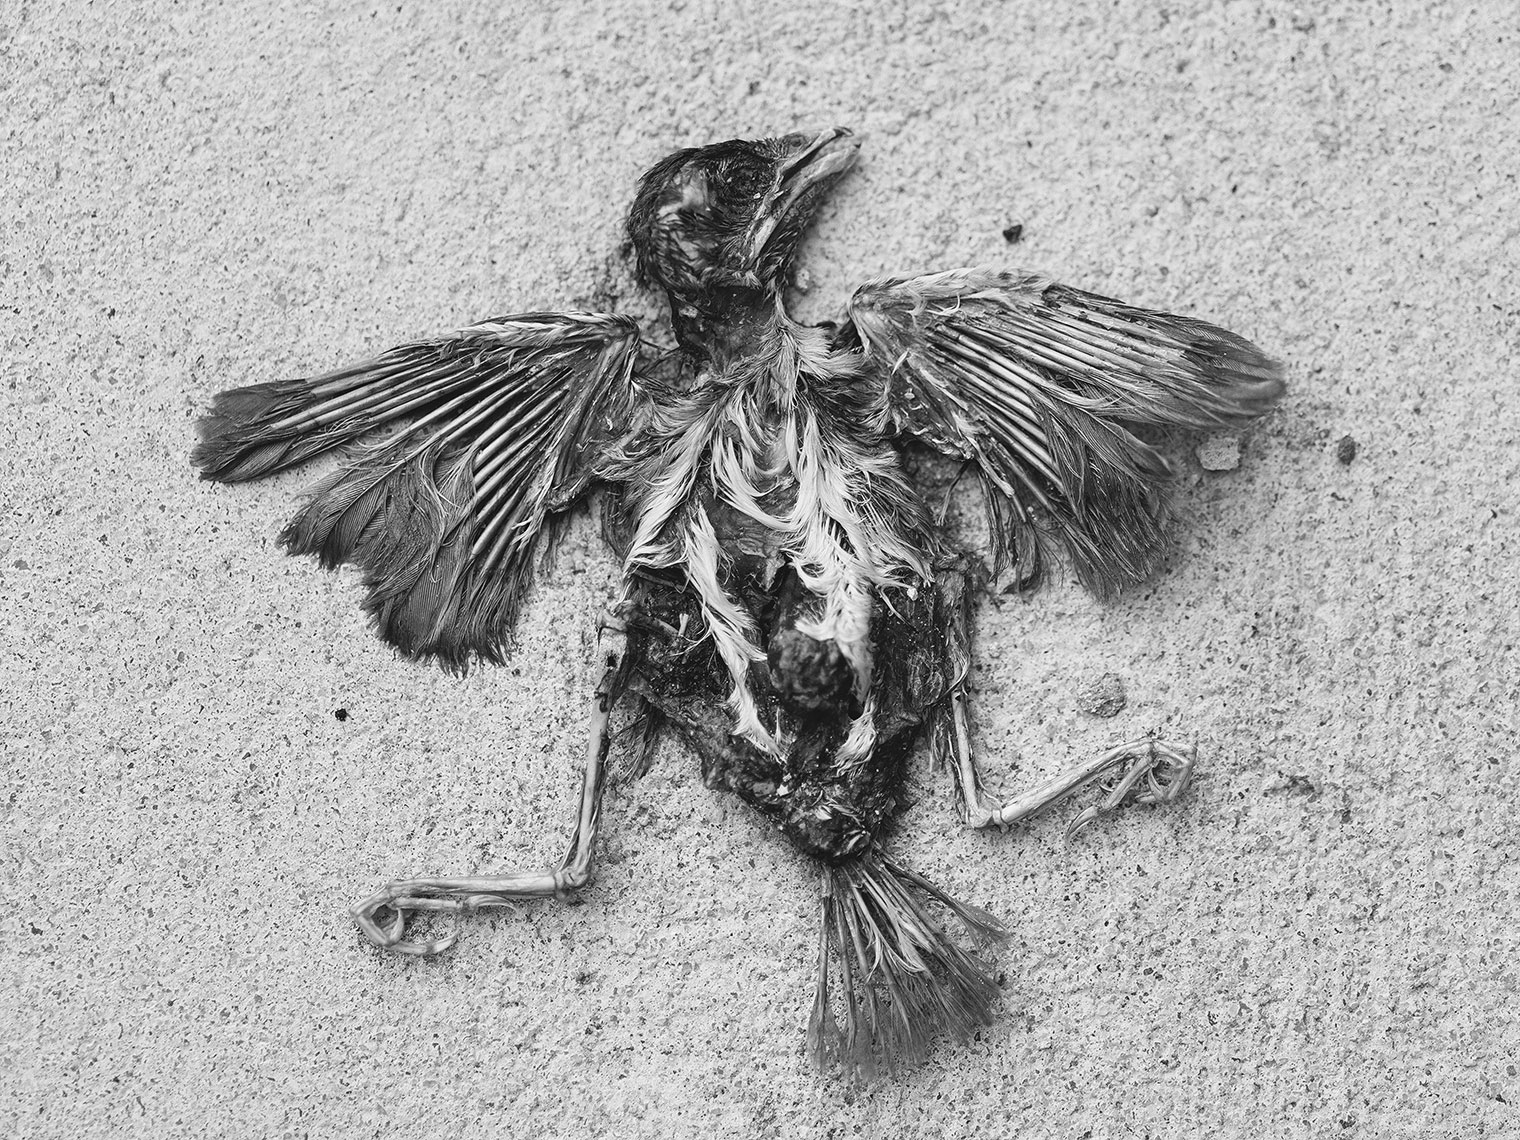 dead bird internal view